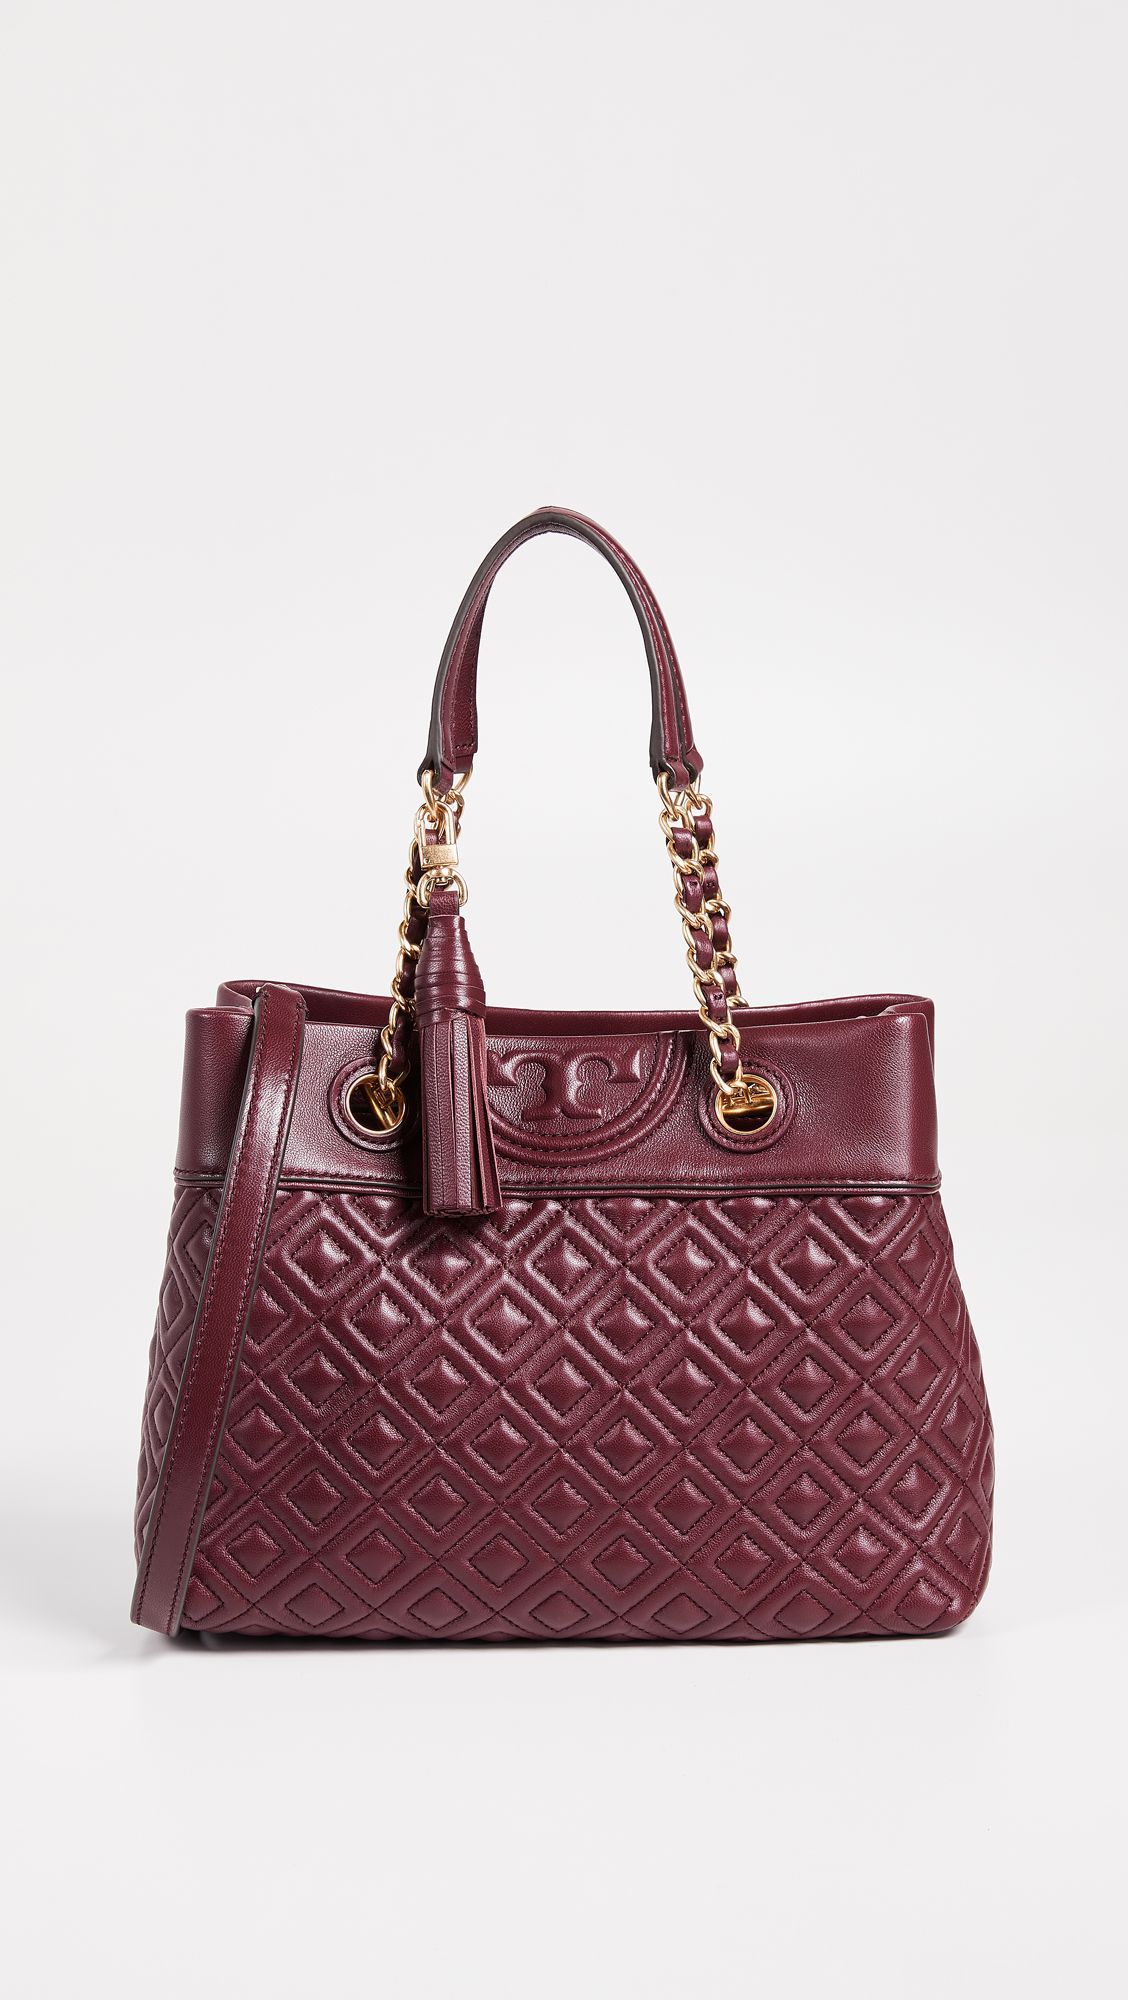 79f141250d43 Tory Burch Fleming Small Tote